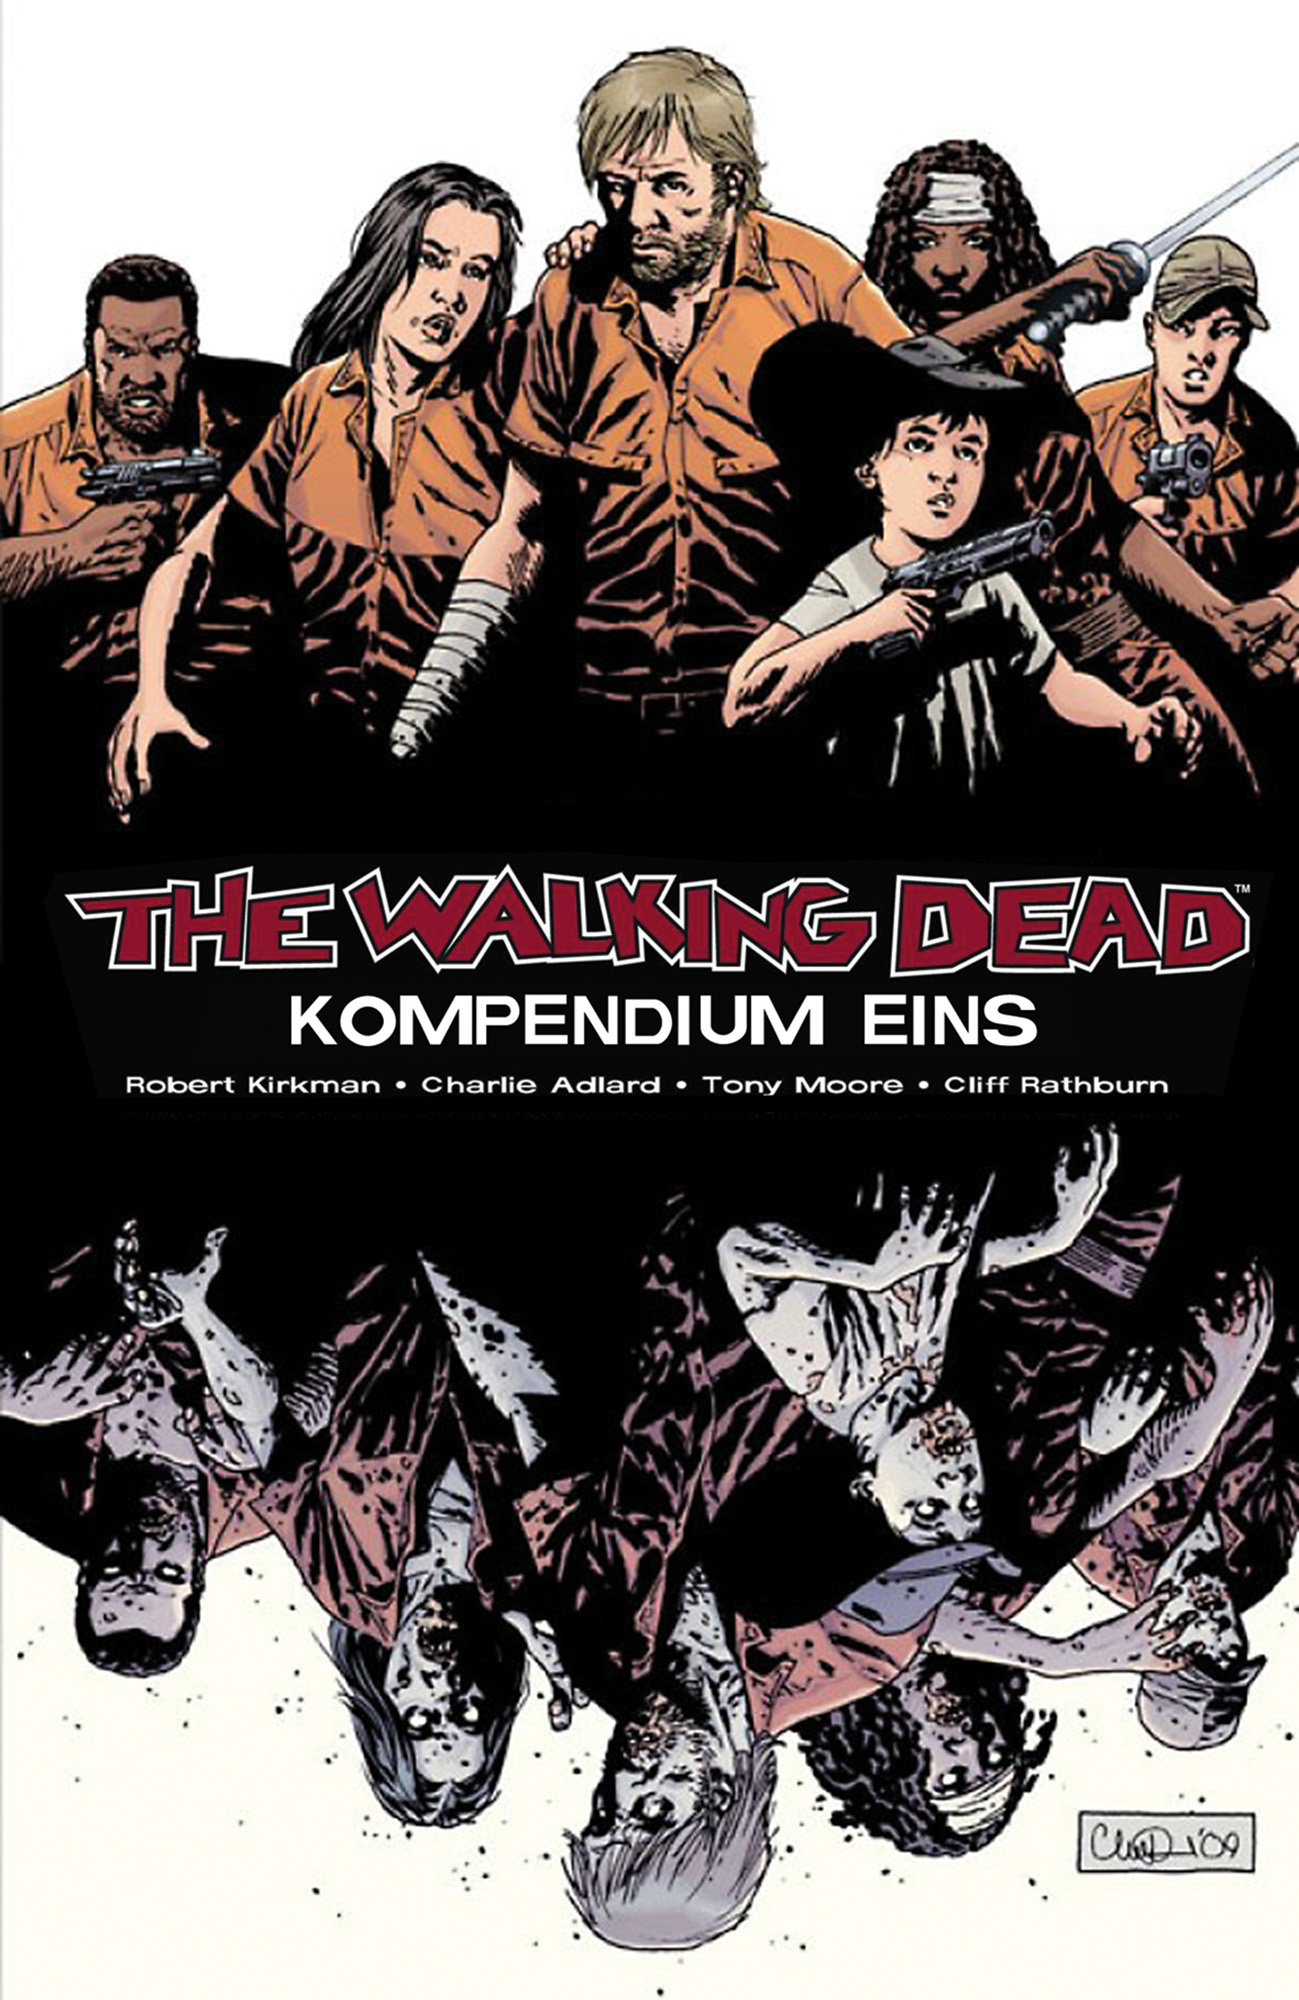 The Walking Dead - Kompendium 01 - Robert Kirkman